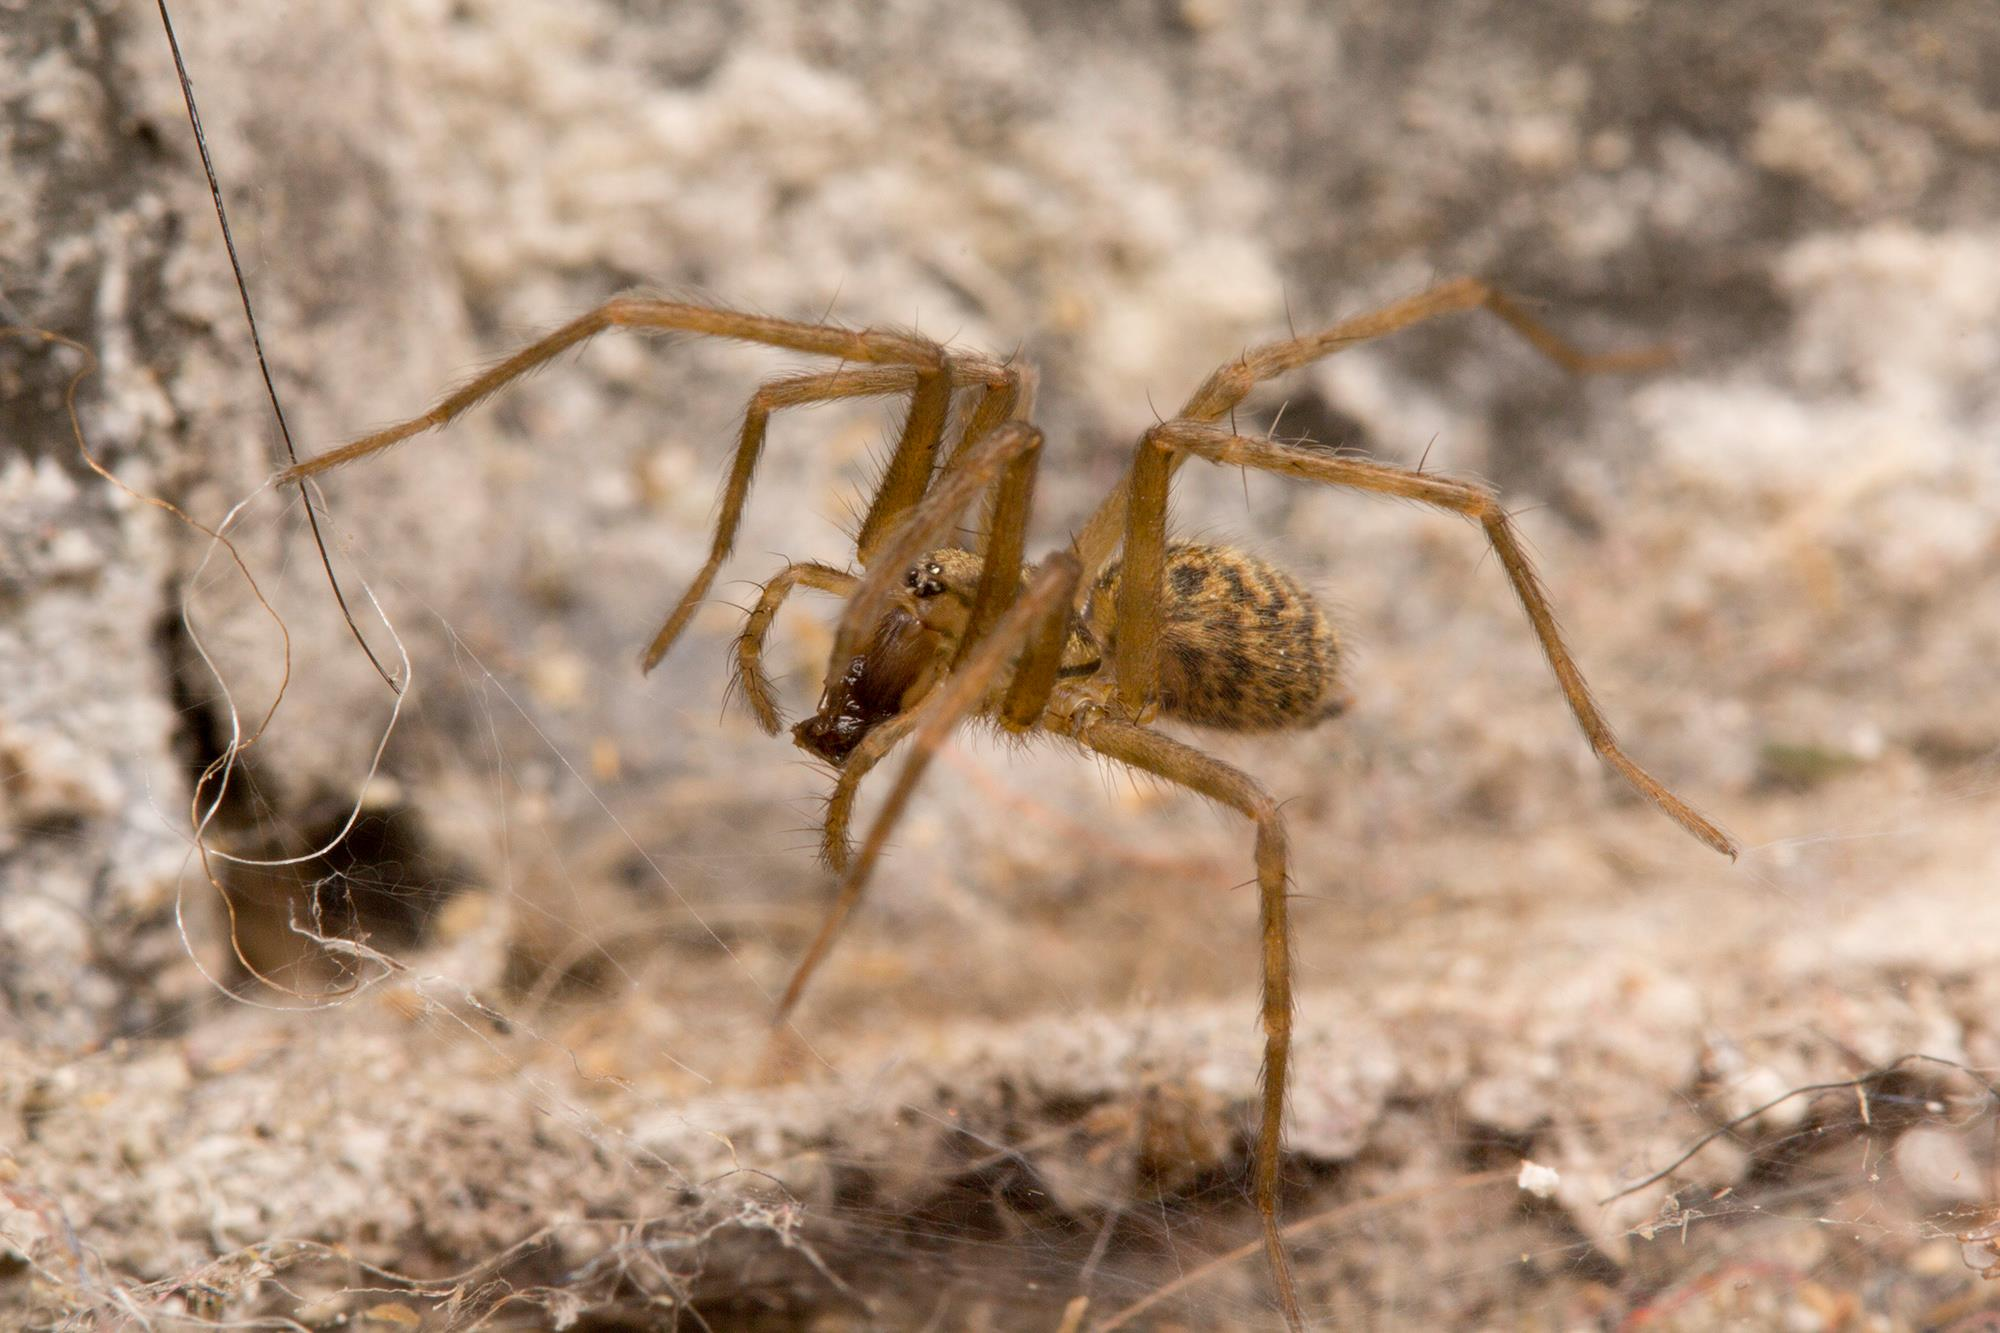 Is this a black footed yellow sac spider i found it in my apartment - House Spiders Like This Tegenaria That Set Up Shop Just Inside The Door Of Our Lab Help Out By Snacking On Any Bugs That Might Also Enjoy Living Inside